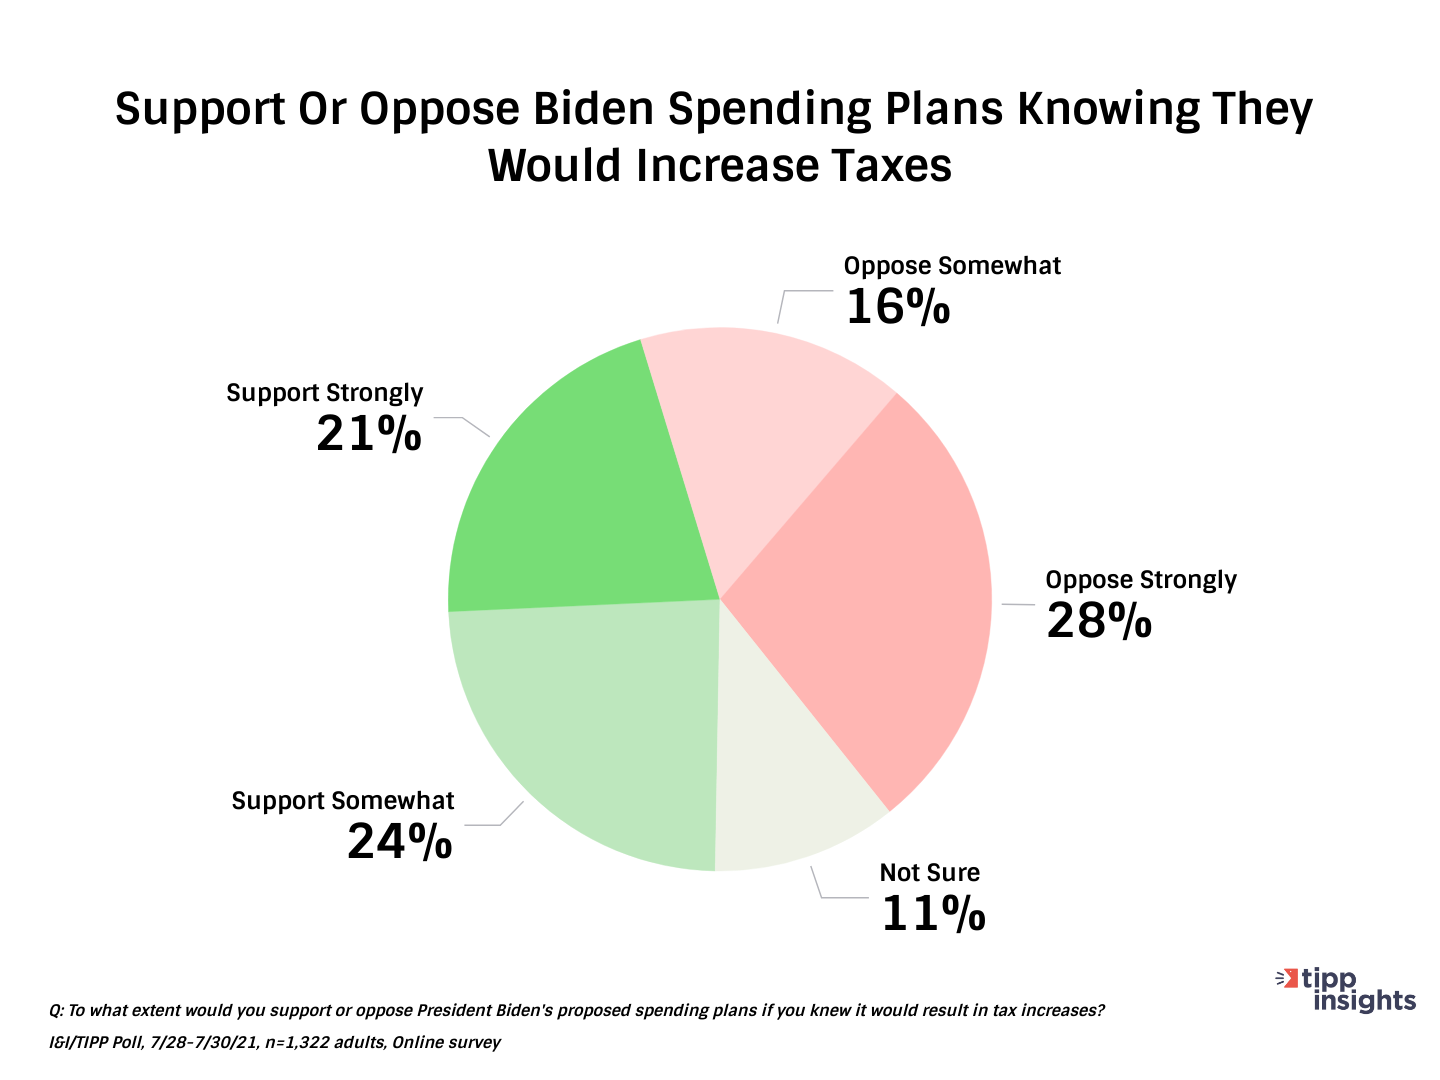 TIPP Poll Results Americans support of oppose biden spending plans if taxes were to increase